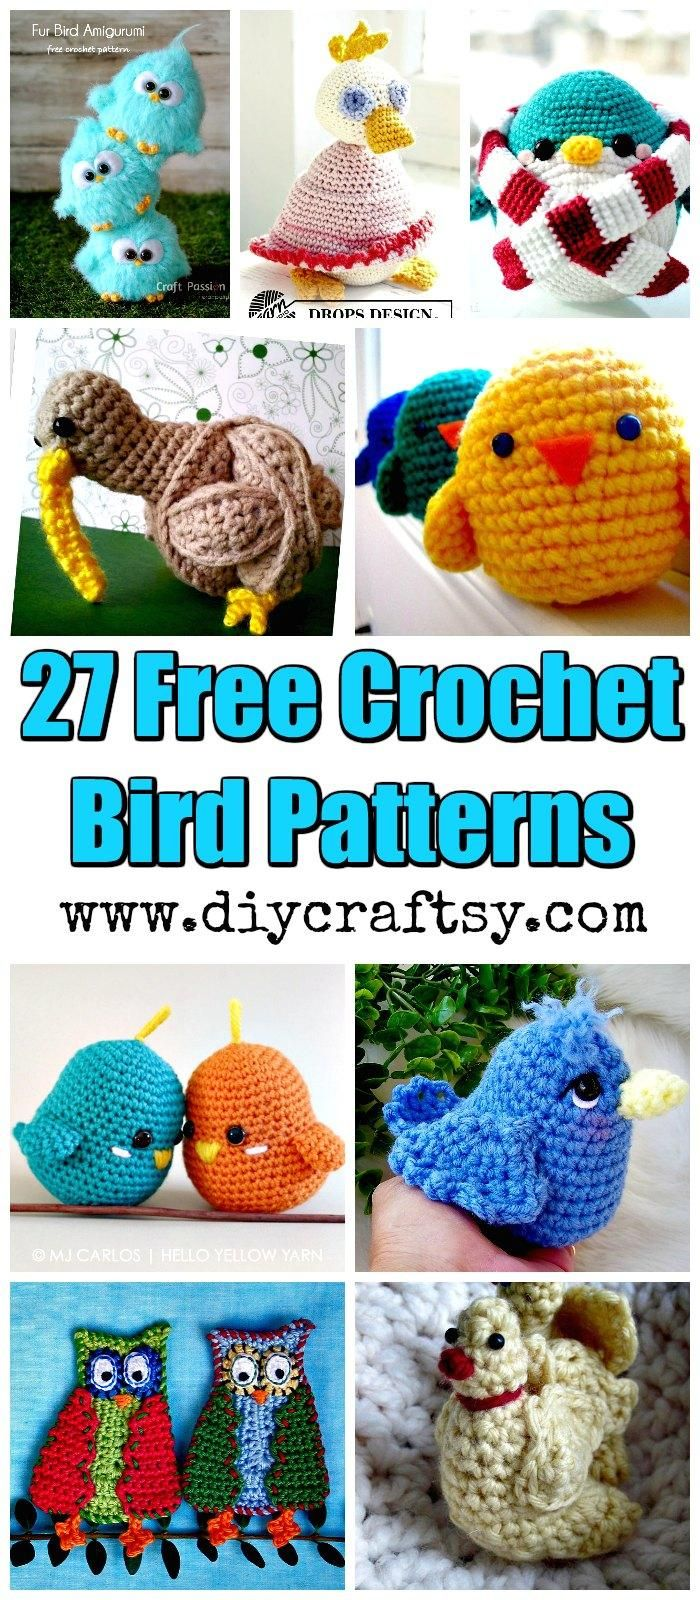 27 Free Crochet Bird Patterns You\'ll Love | Patrón gratis, Ave y ...